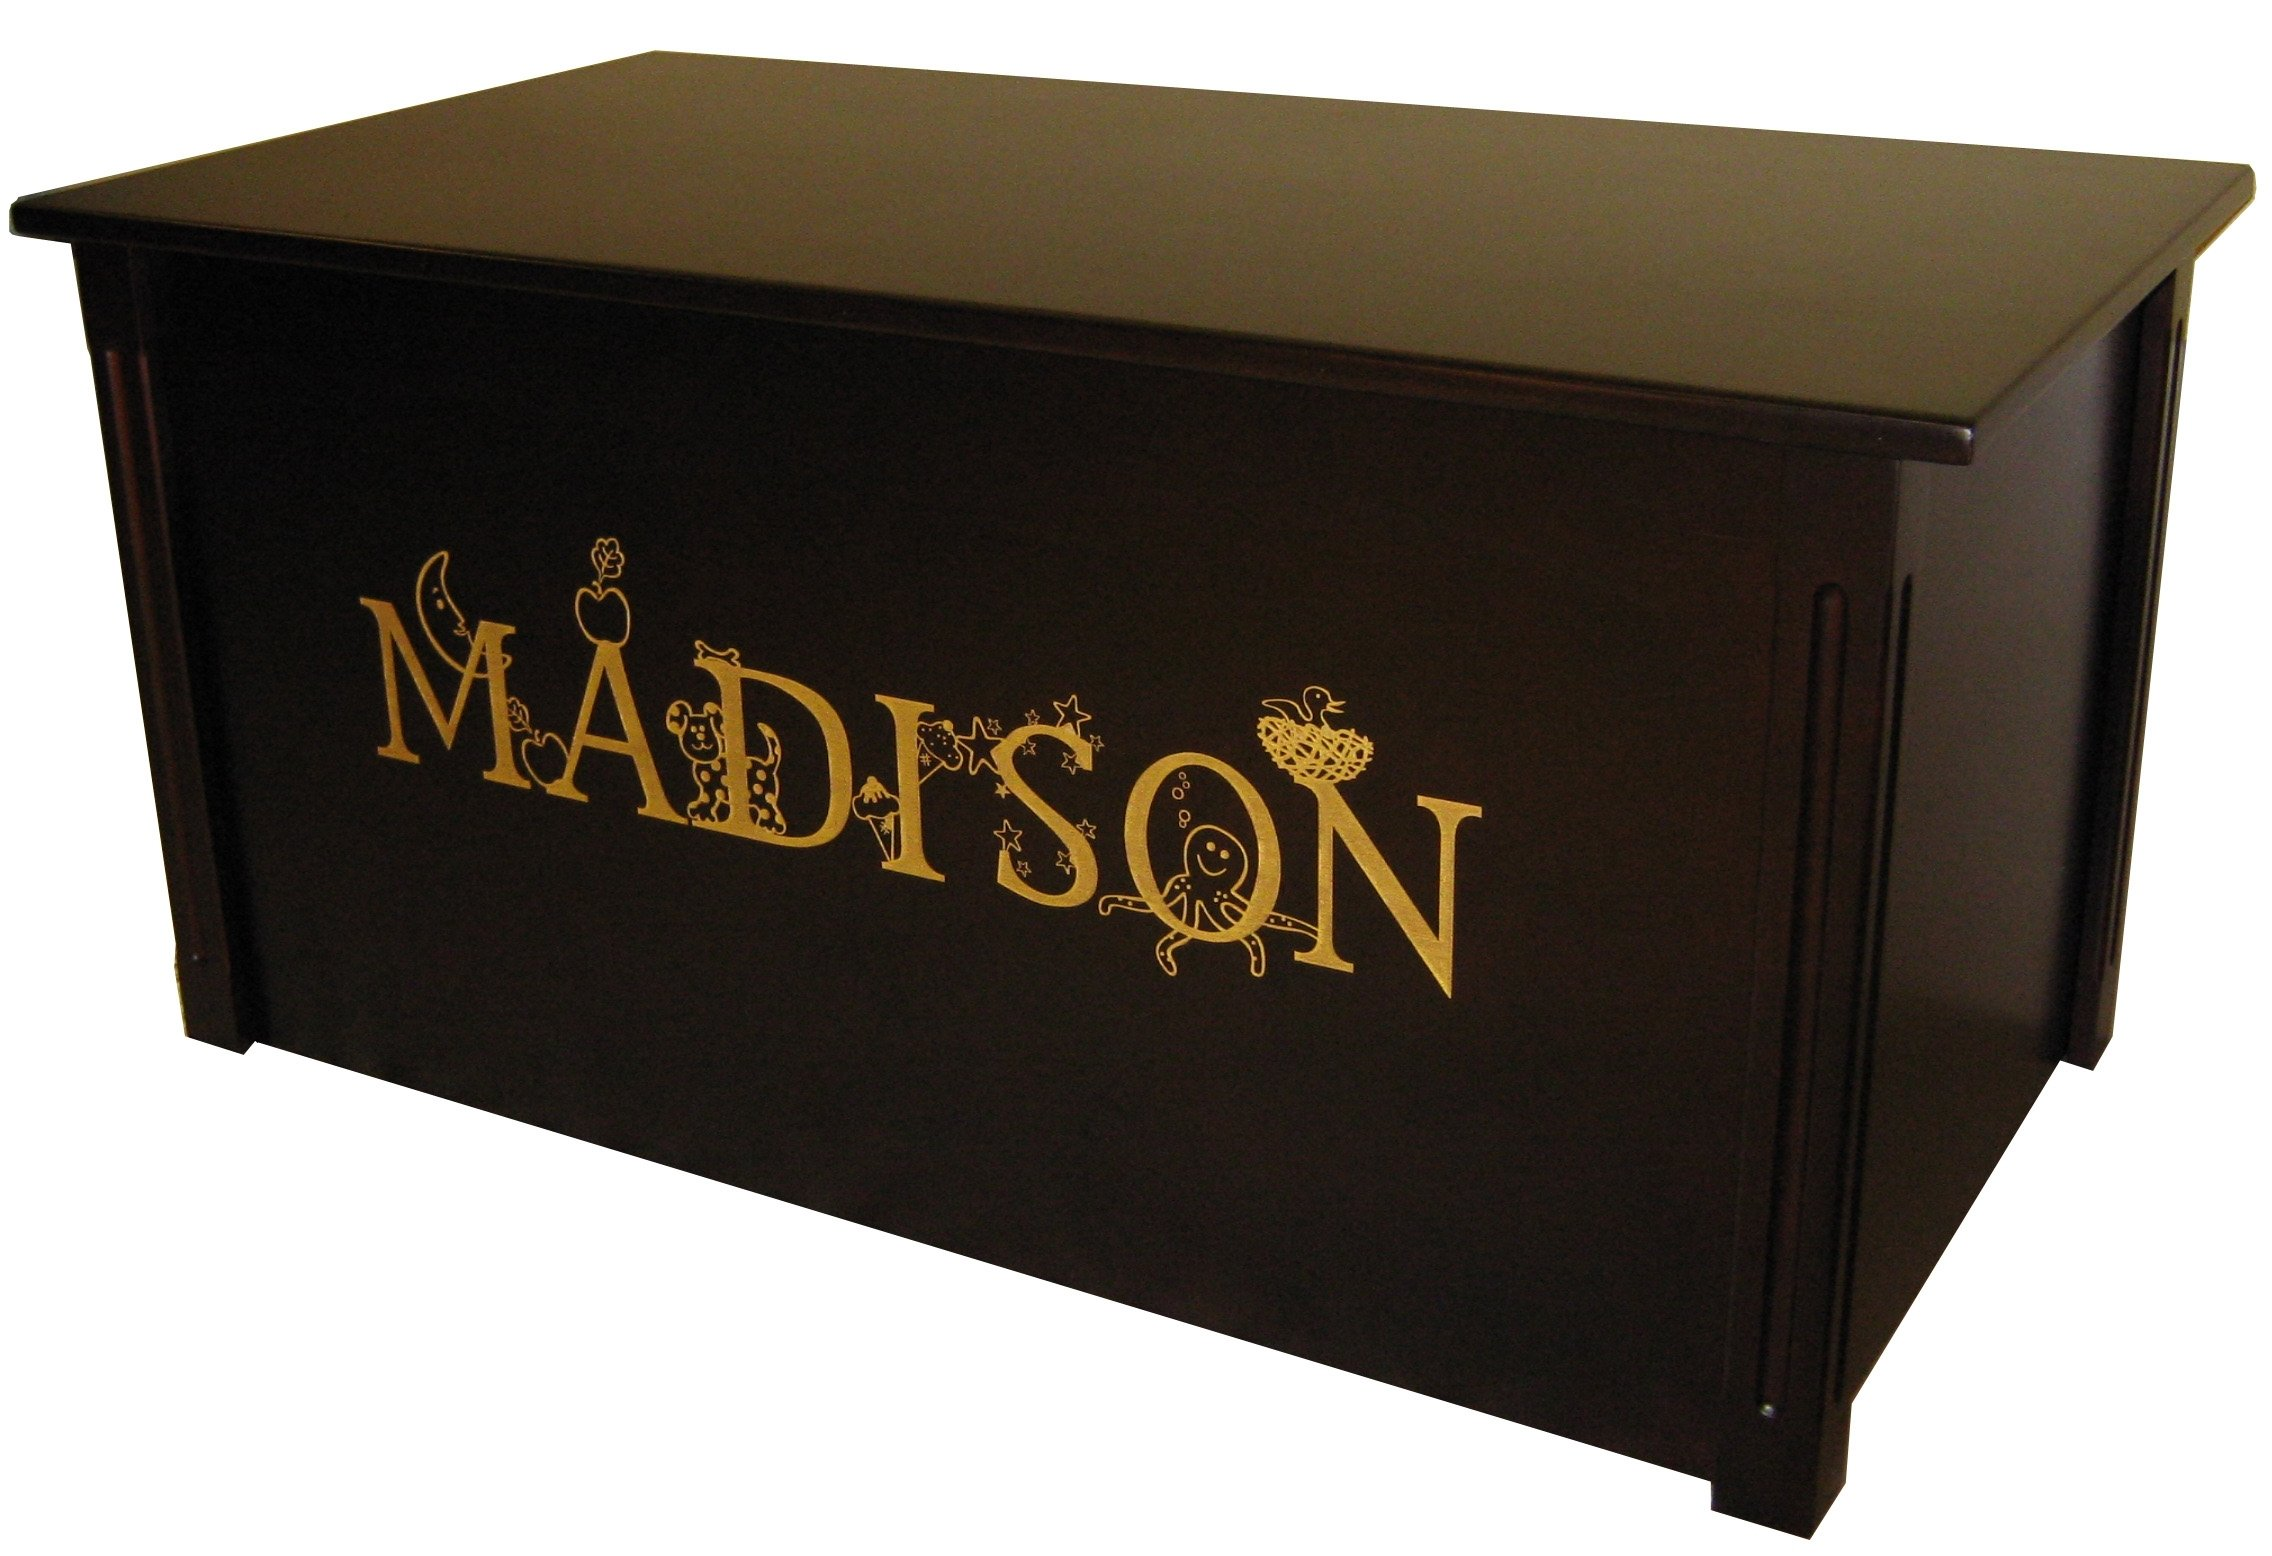 Wood Toy Box, Large Espresso Toy Chest, Personalized Thematic Font, Custom Options (Cedar Base - Gold Lettering)